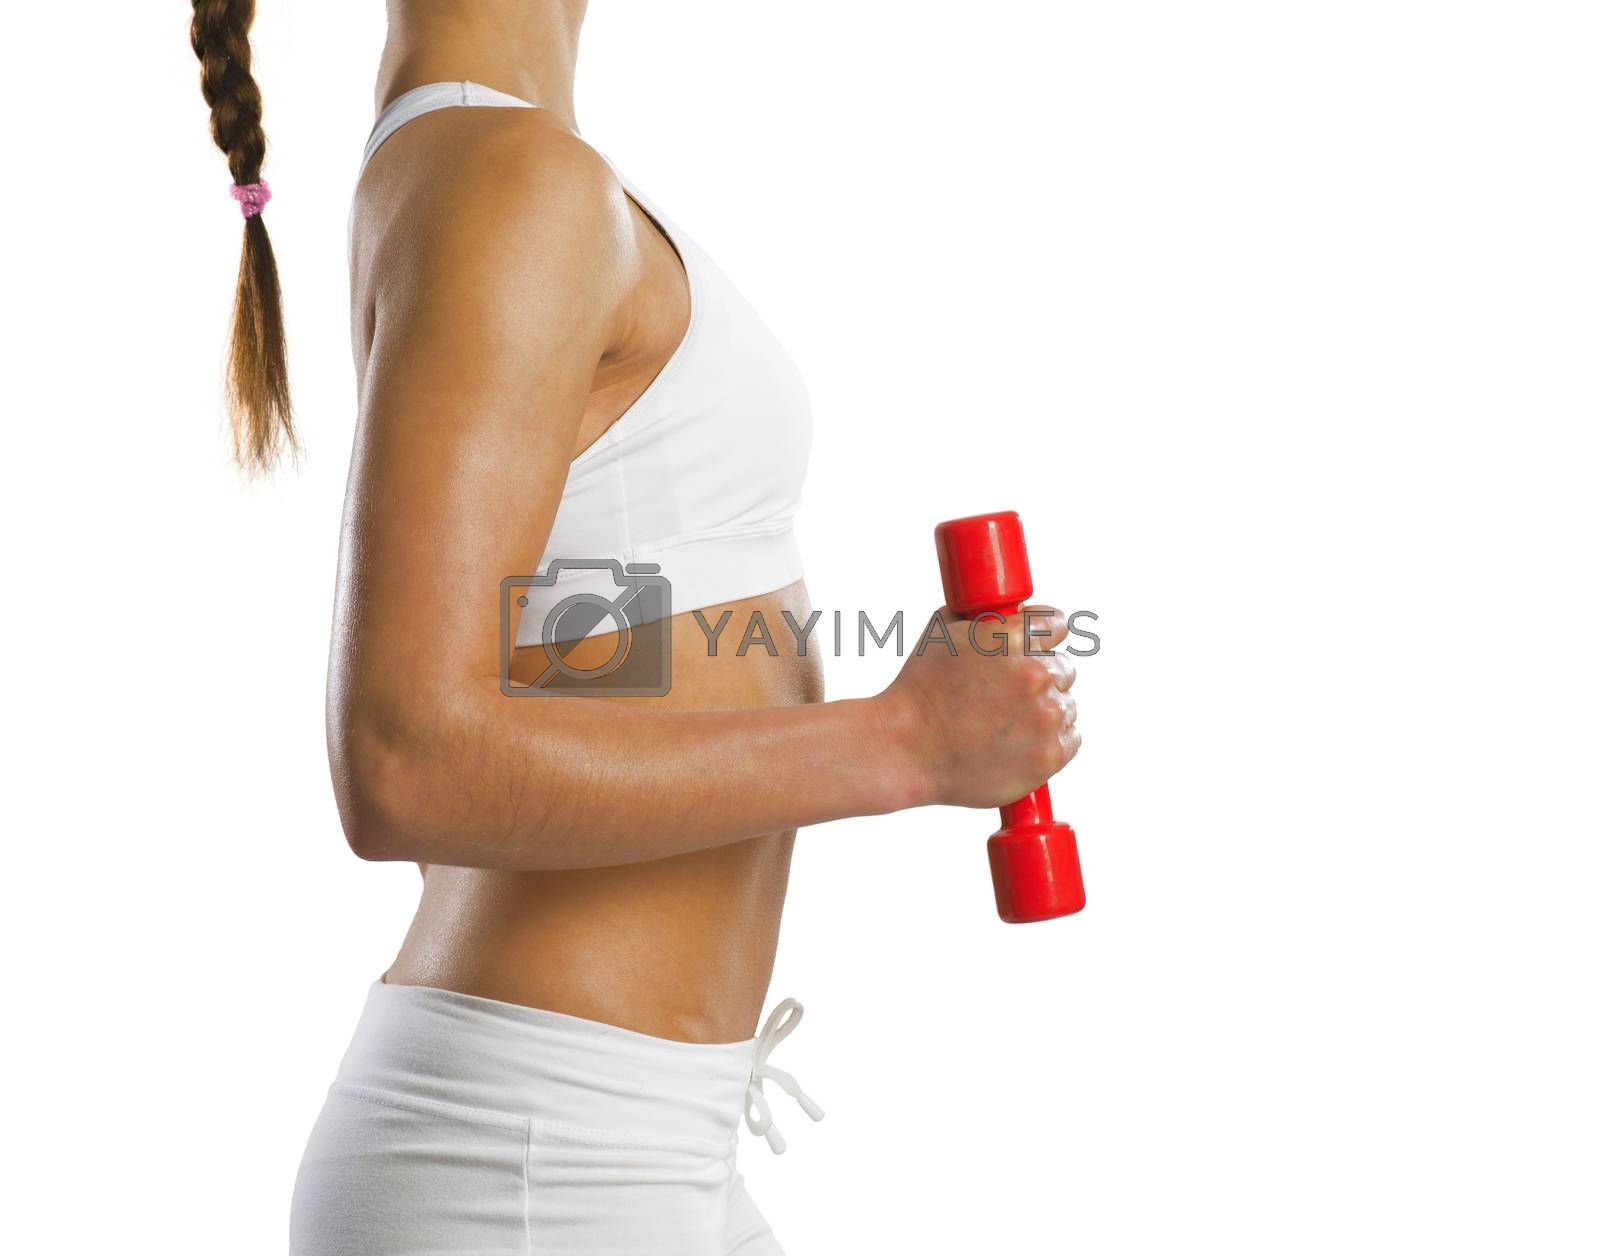 Royalty free image of sporty woman by adam121